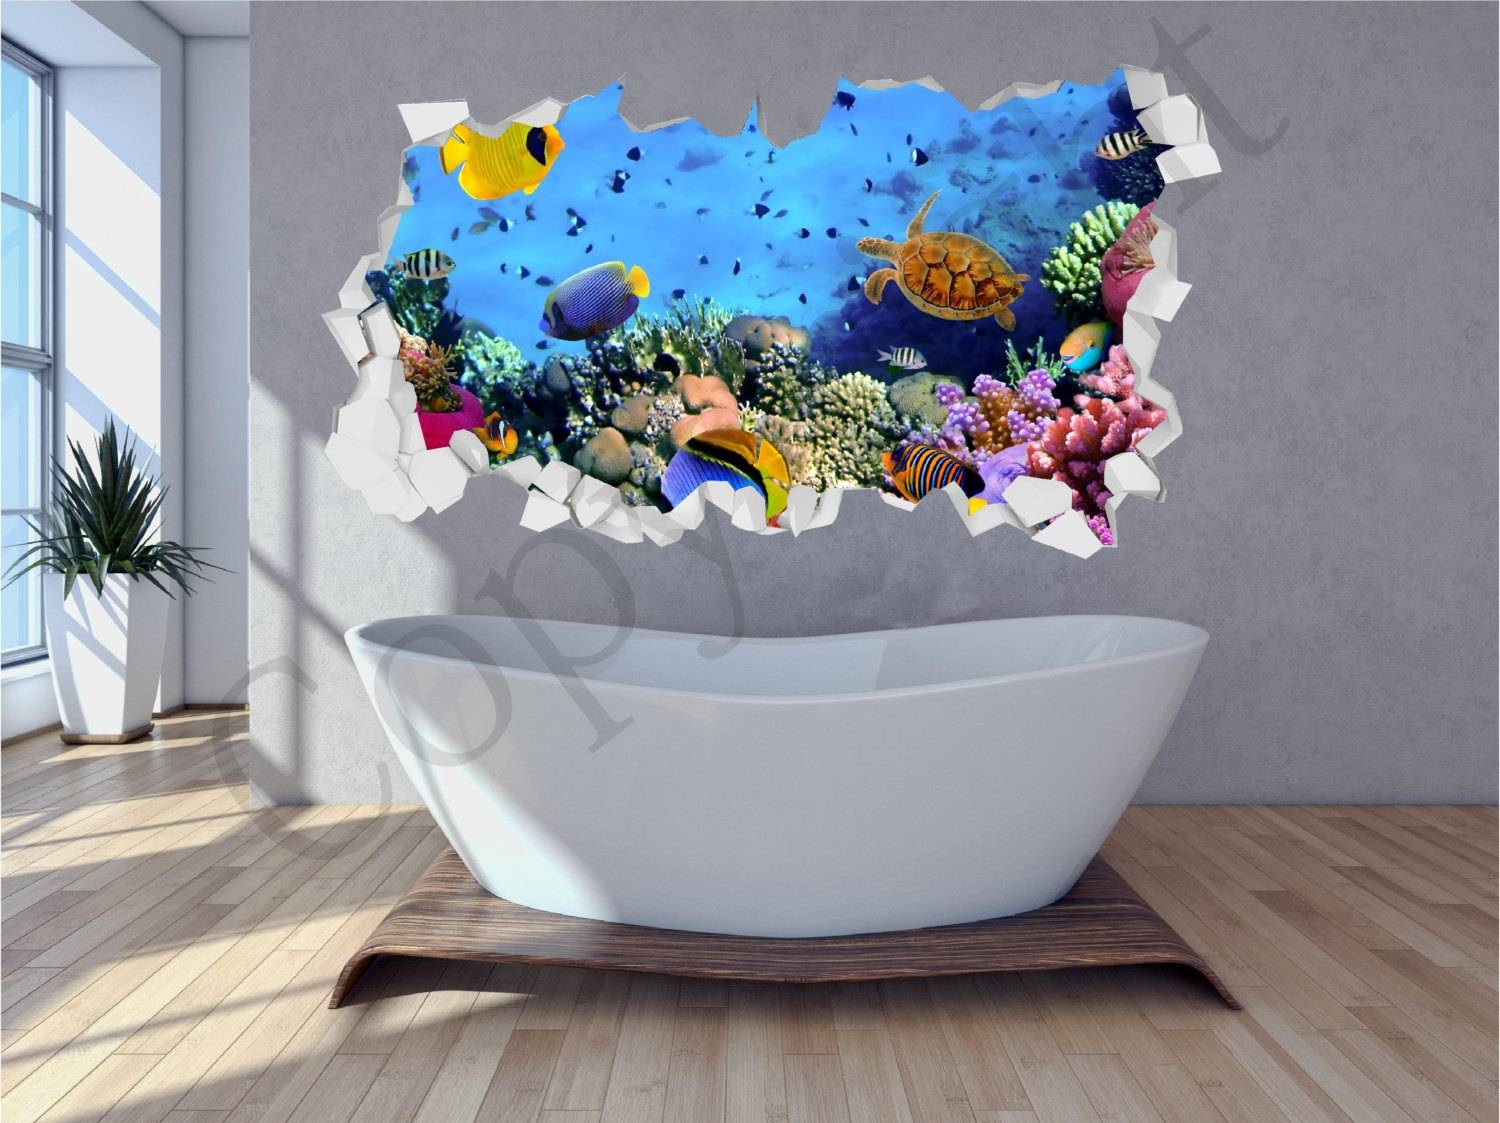 Sea Aquarium Fish Bathroom Under Water Crumbled Wall 3D Huge Pertaining To Latest Fish 3D Wall Art (View 15 of 20)